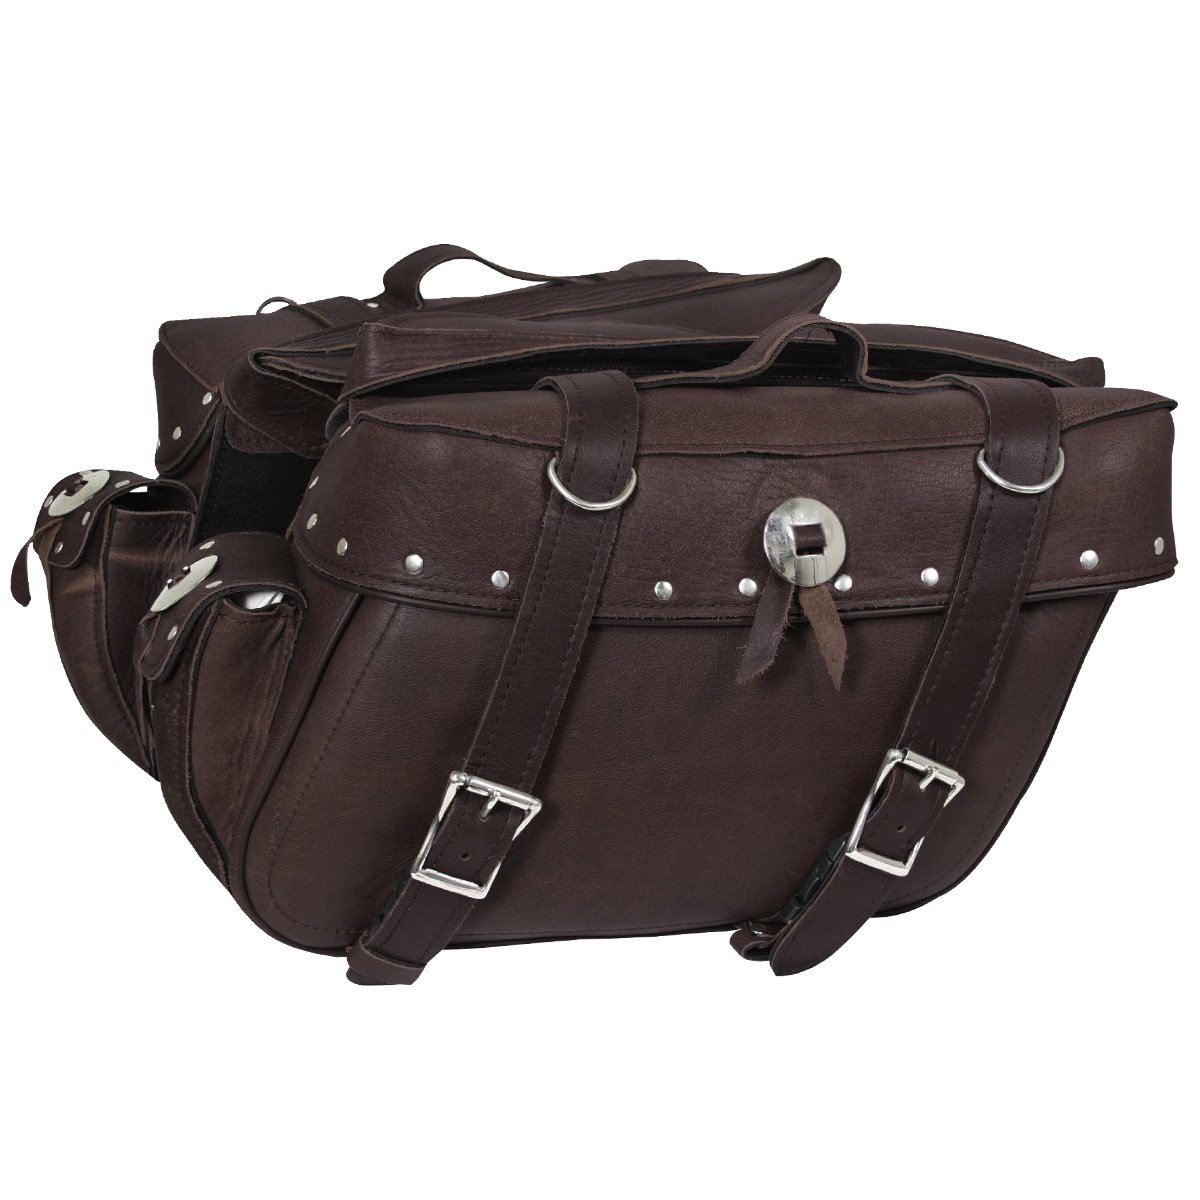 Xelement 2918-BR Brown Distressed Leather Motorcycle Saddlebags - One Size